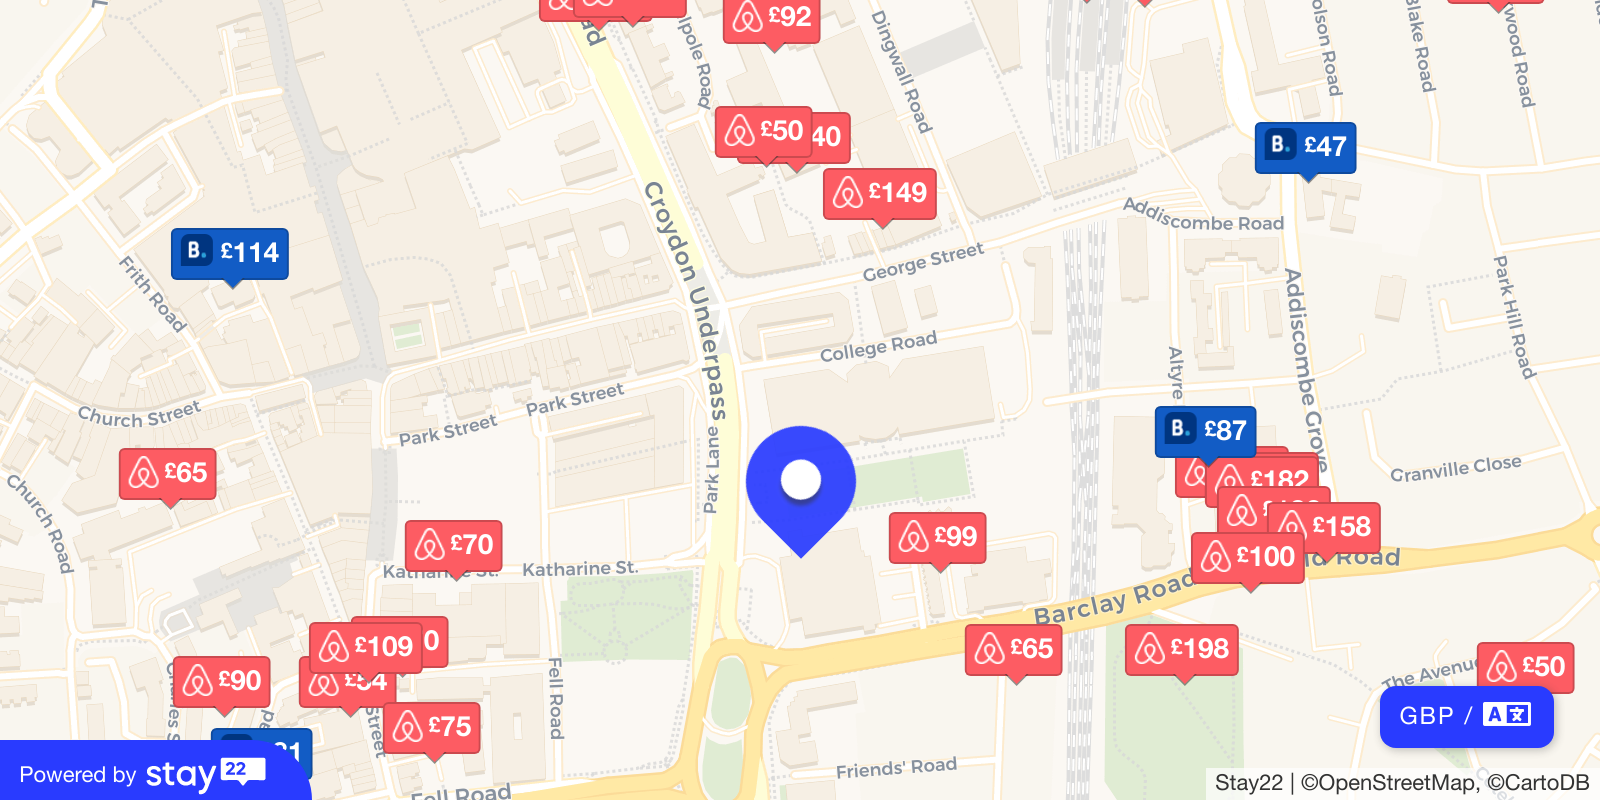 Places to stay near Fairfield Halls